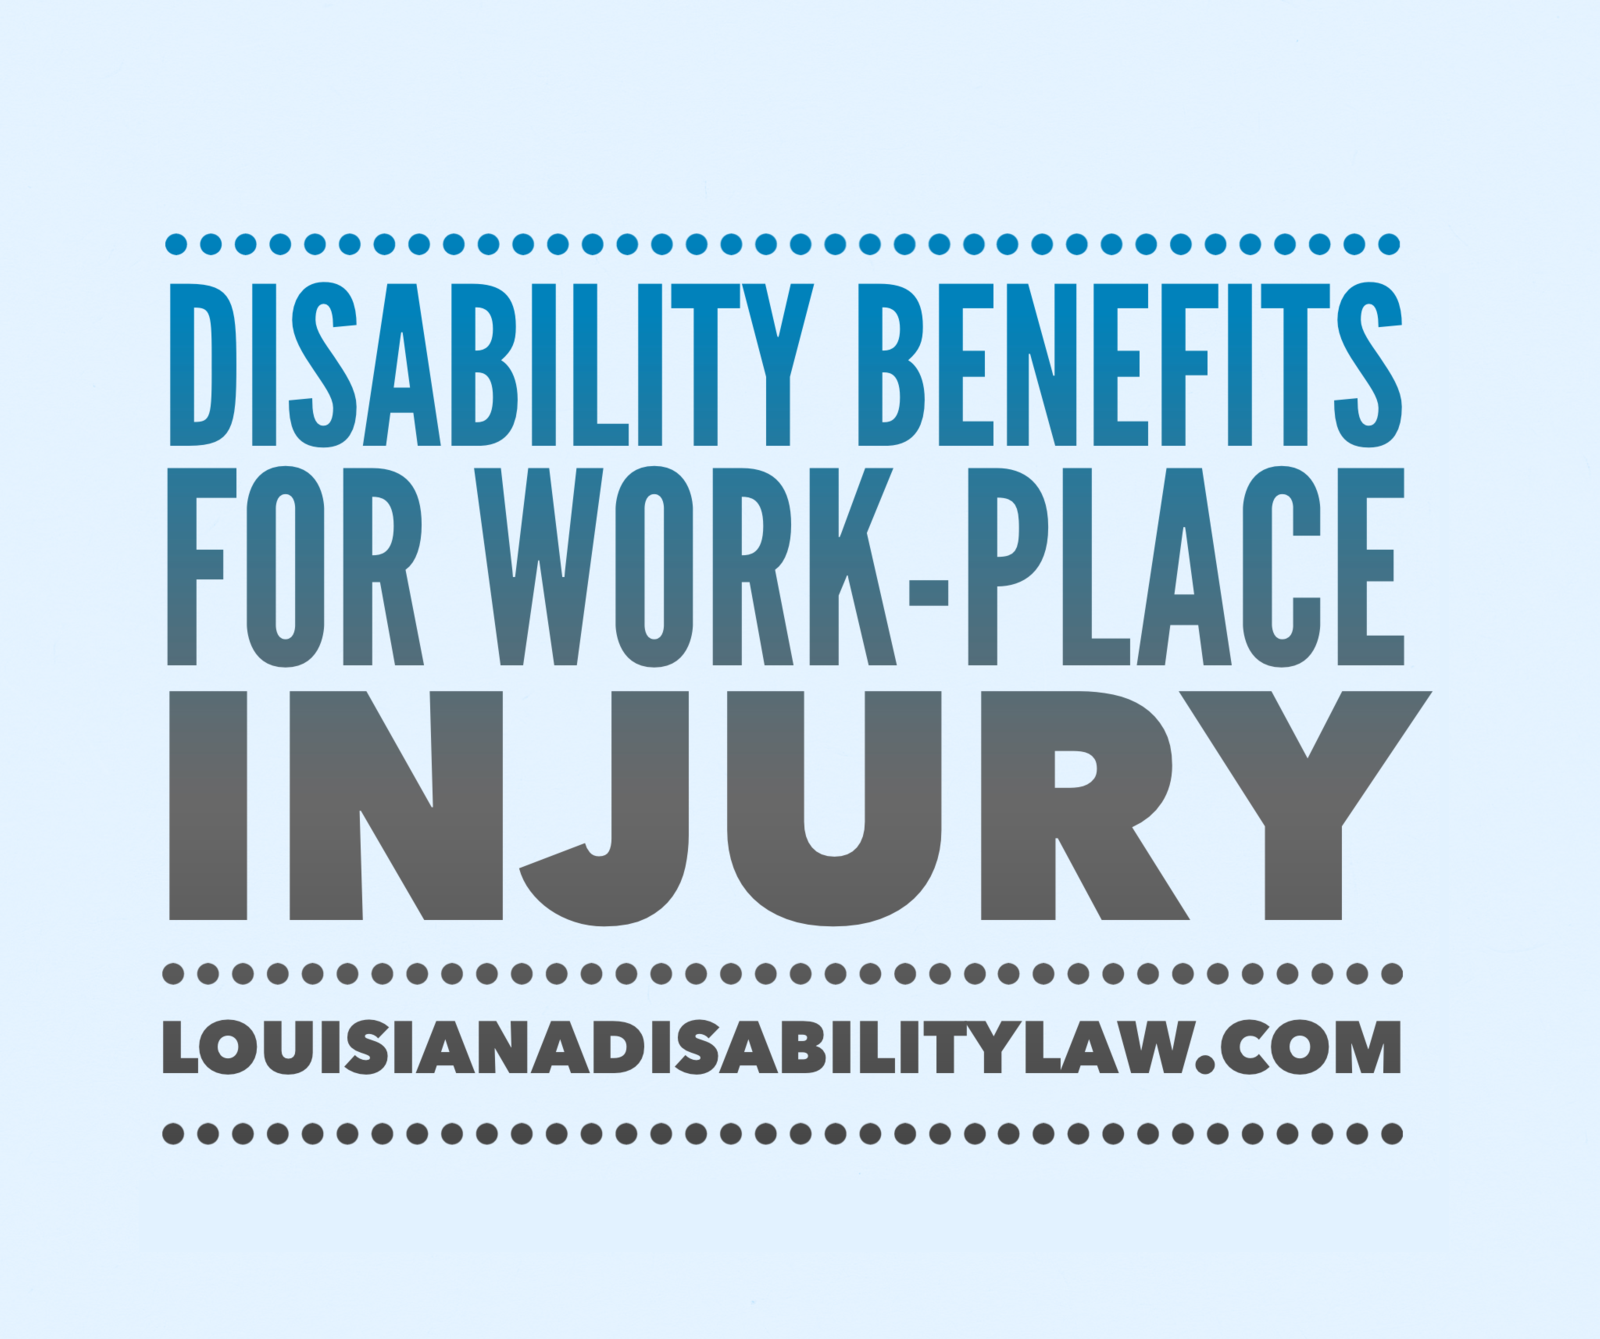 Disability Benefits for Work-Place Injury